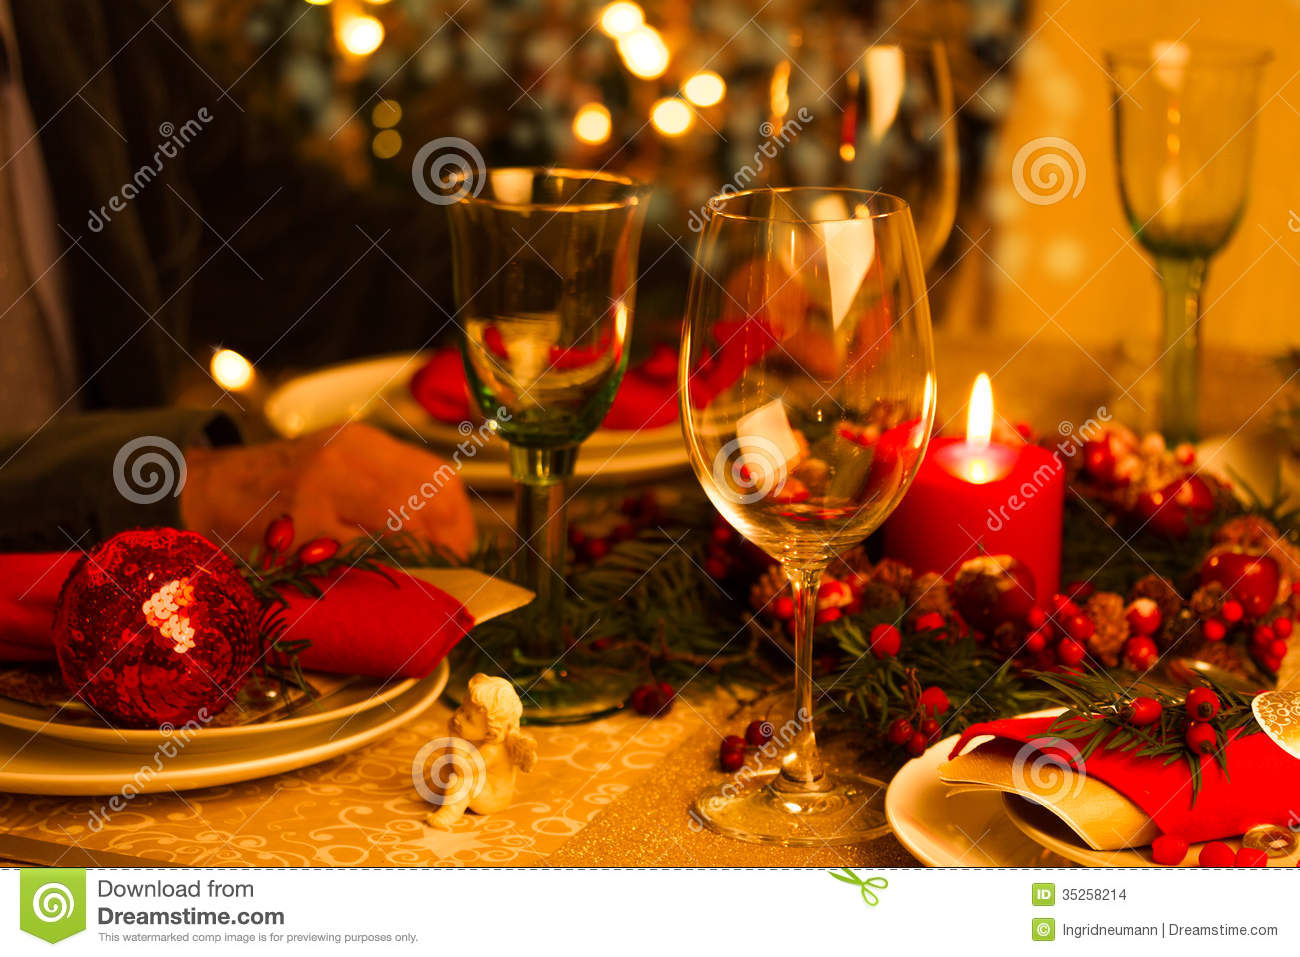 Christmas table setting holiday decorations beautifully set red gold